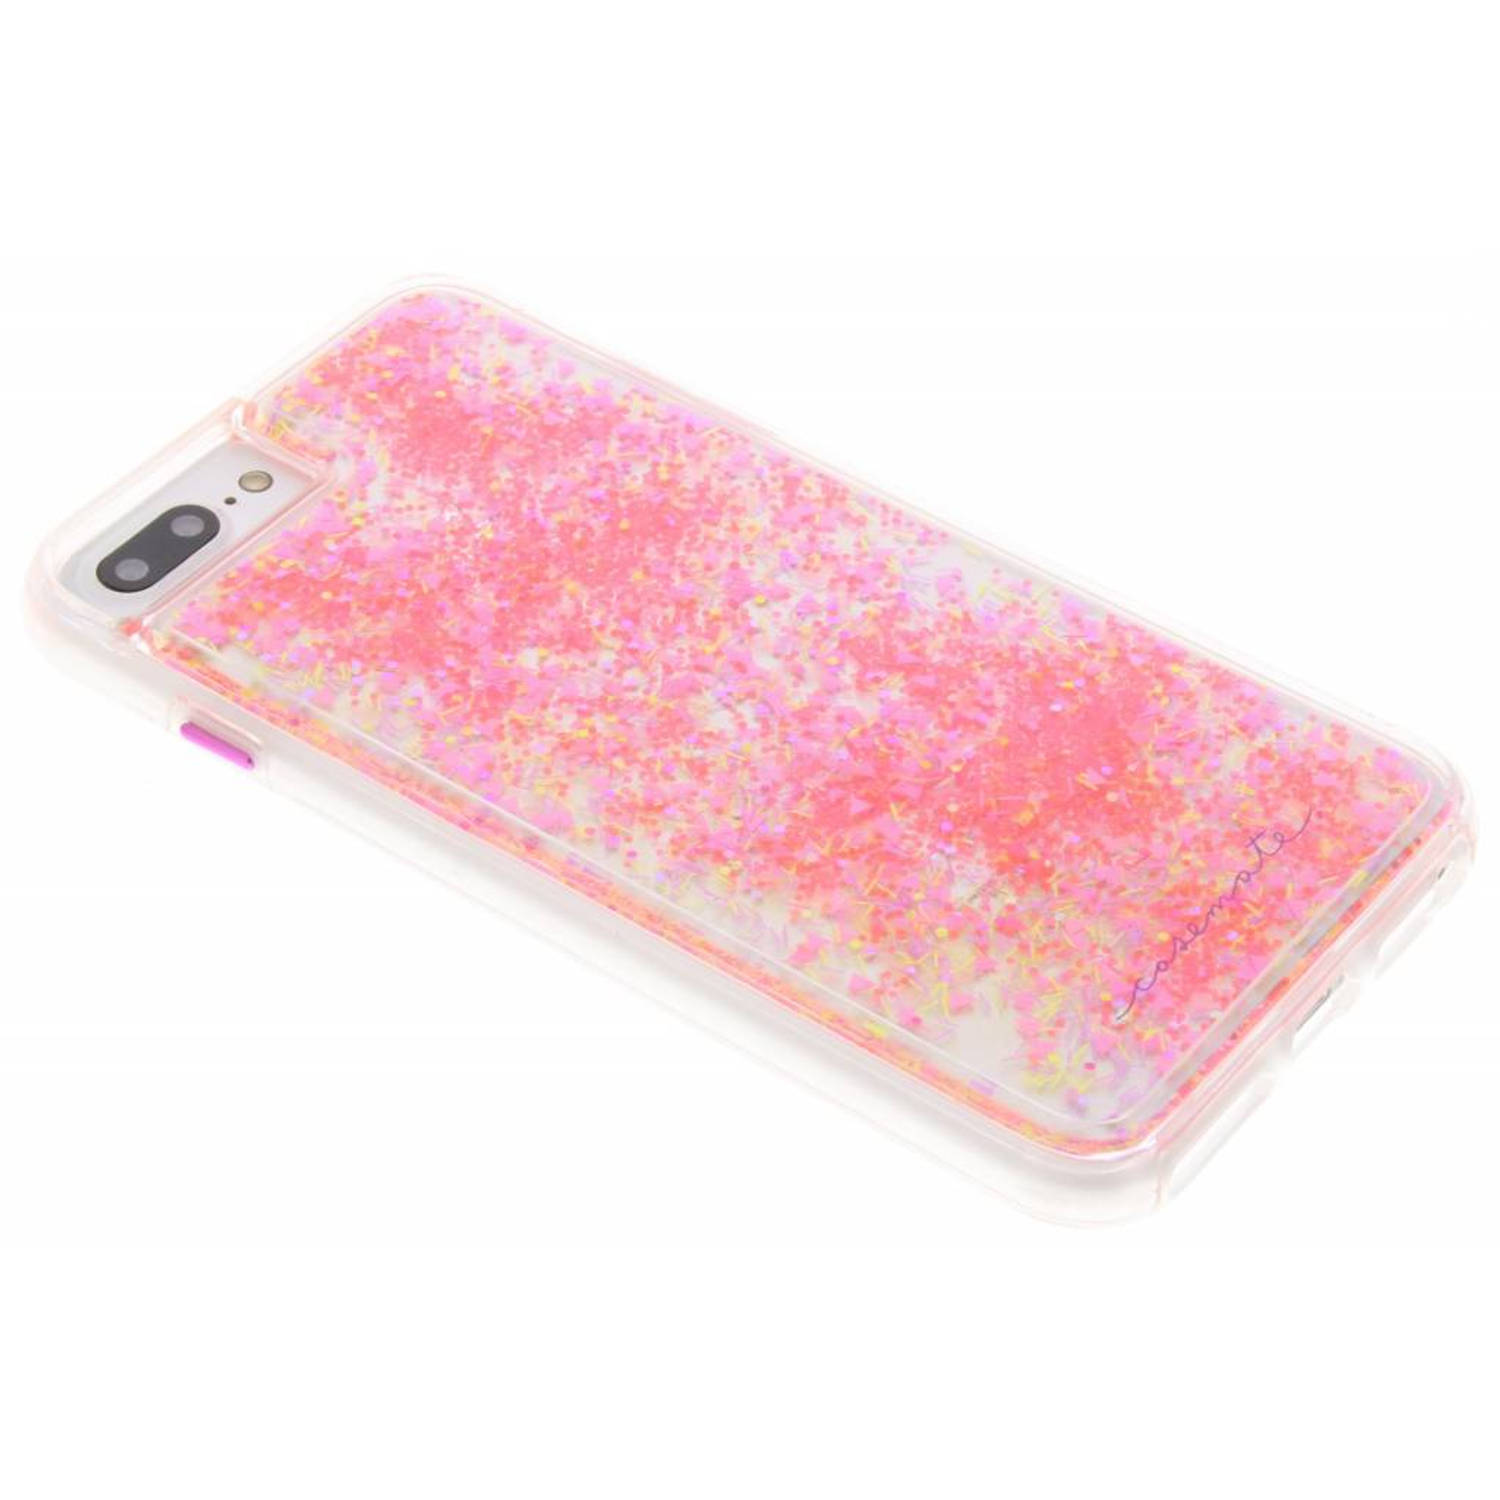 Roze Waterfall Glow Case voor de iPhone 8 Plus / 7 Plus / 6(s) Plus